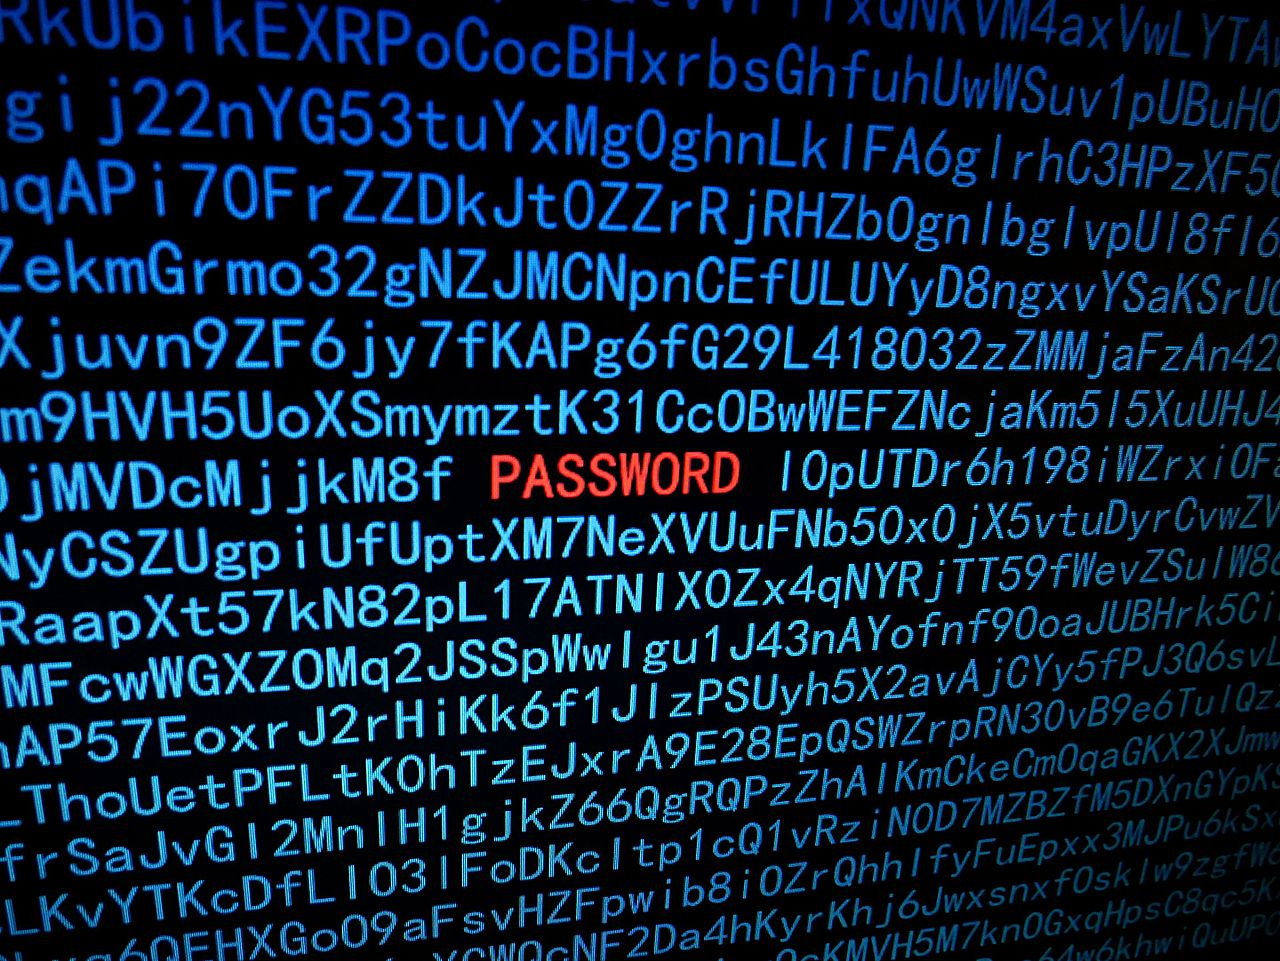 A horror story of reusing passwords, a warning to us all